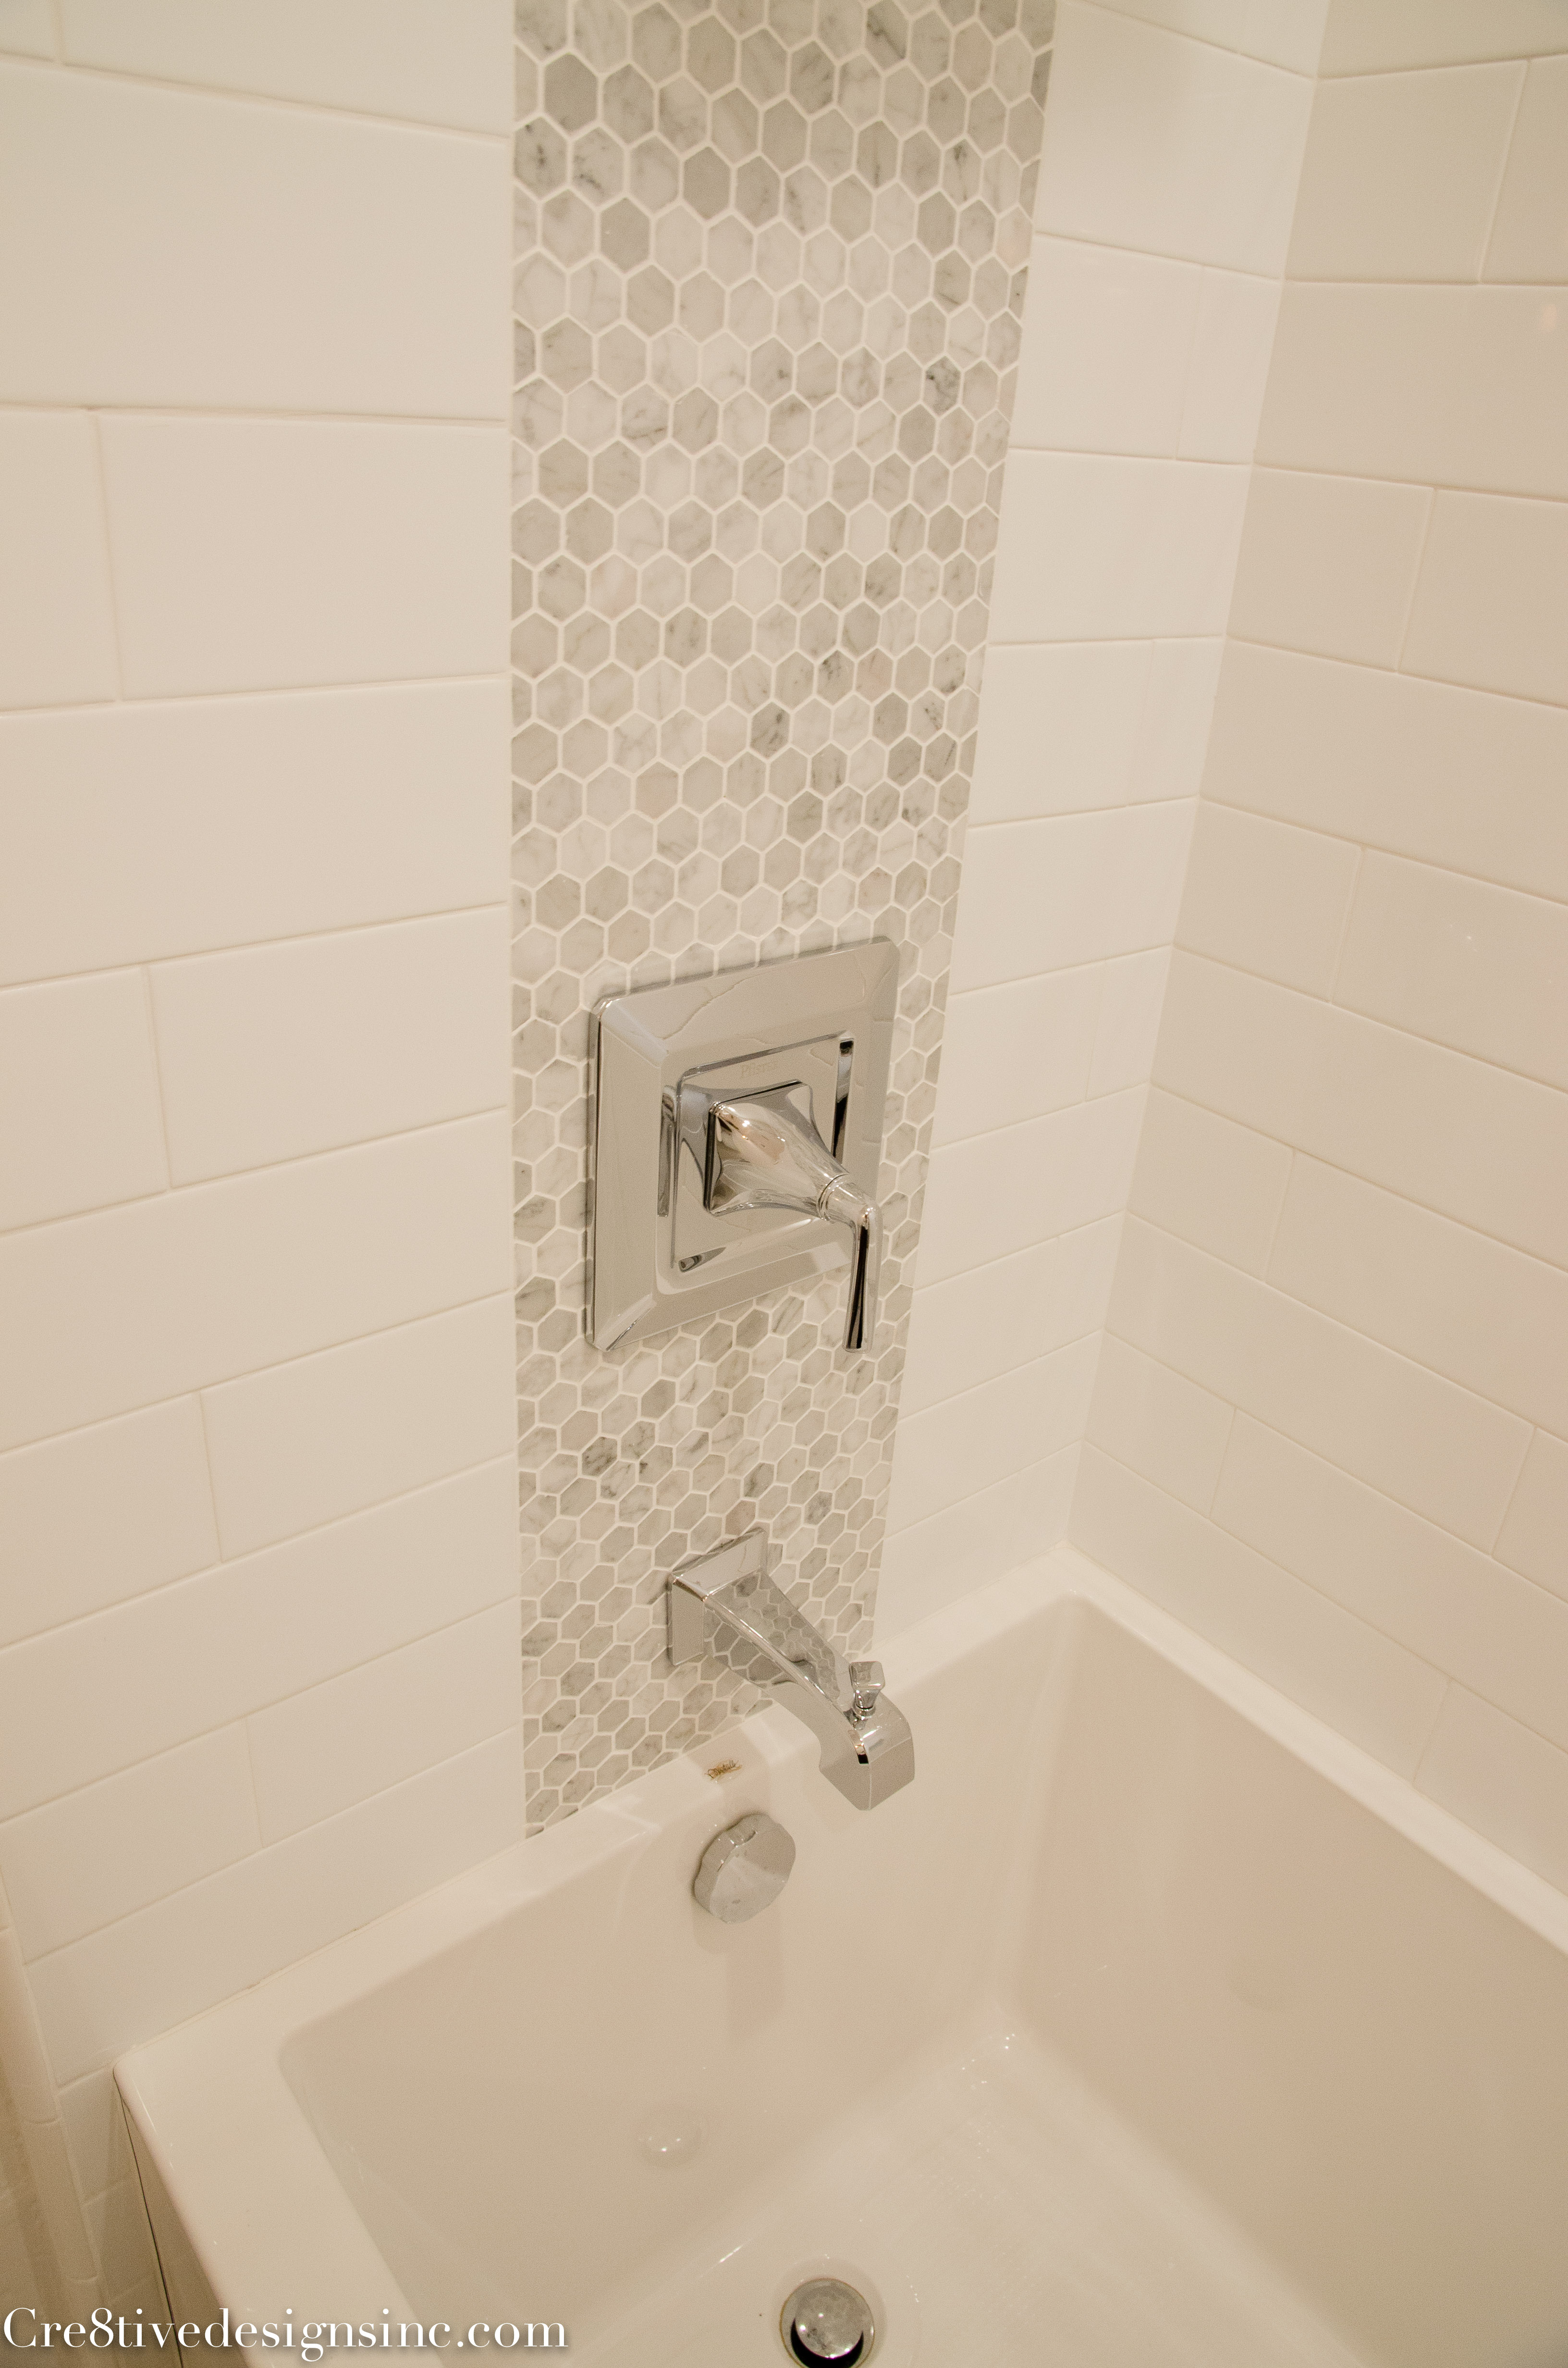 Ideal Pfister tub faucet